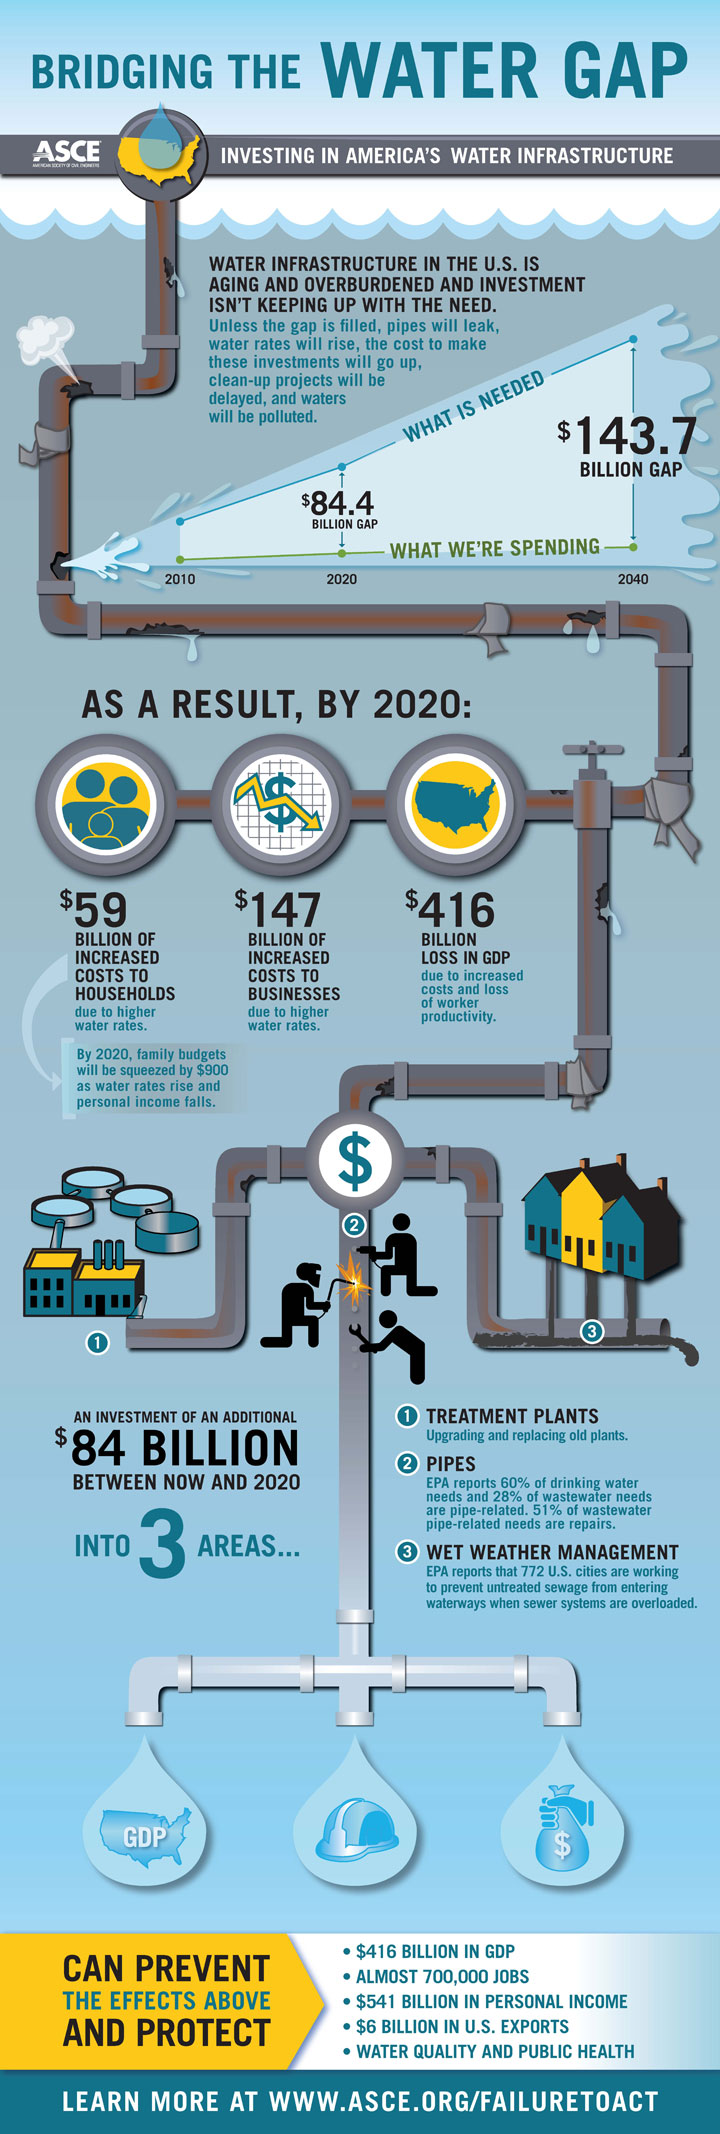 bridging-water-gap-infographic